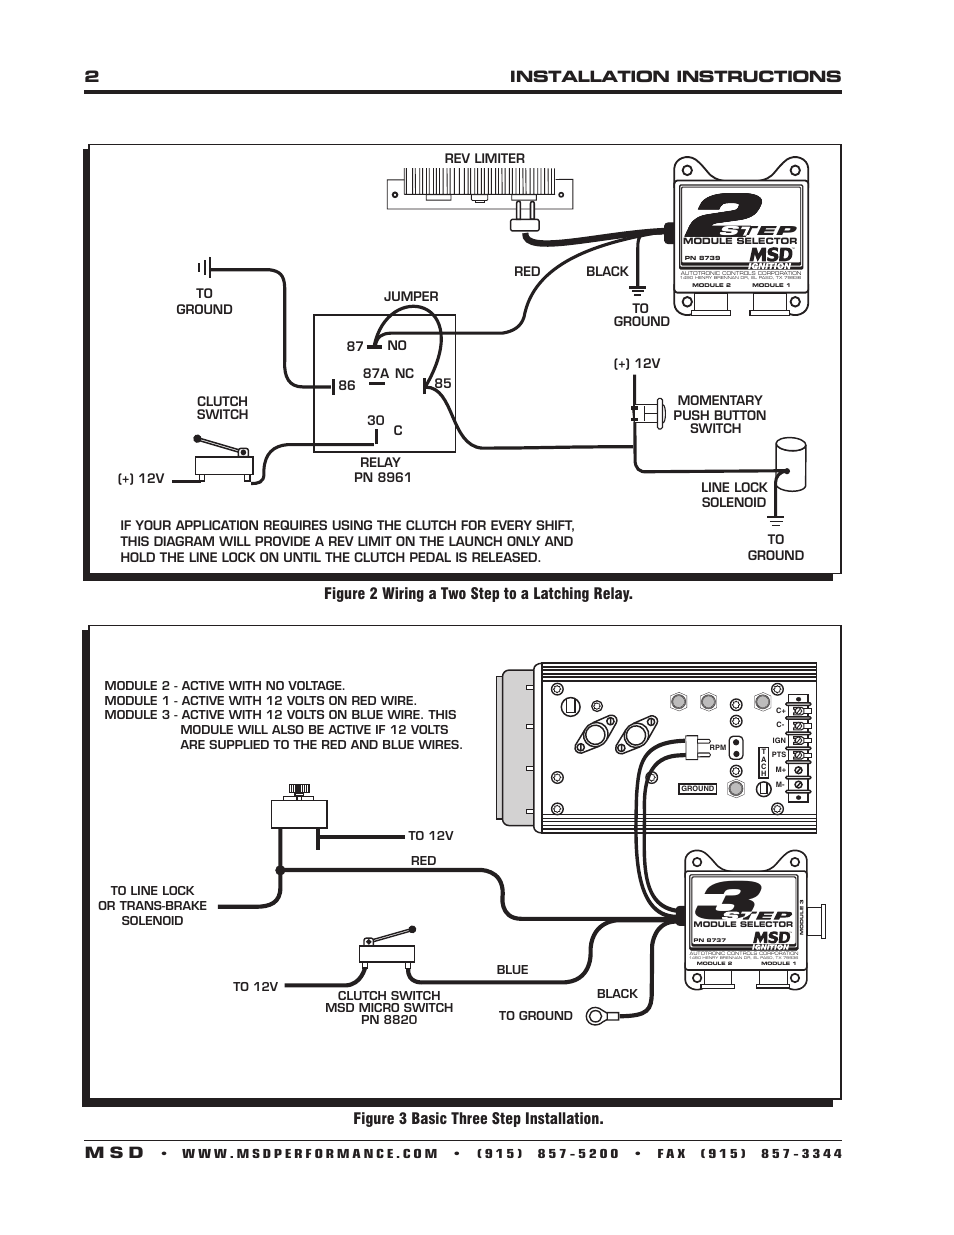 msd 2 step wiring msd 6 wiring diagrams